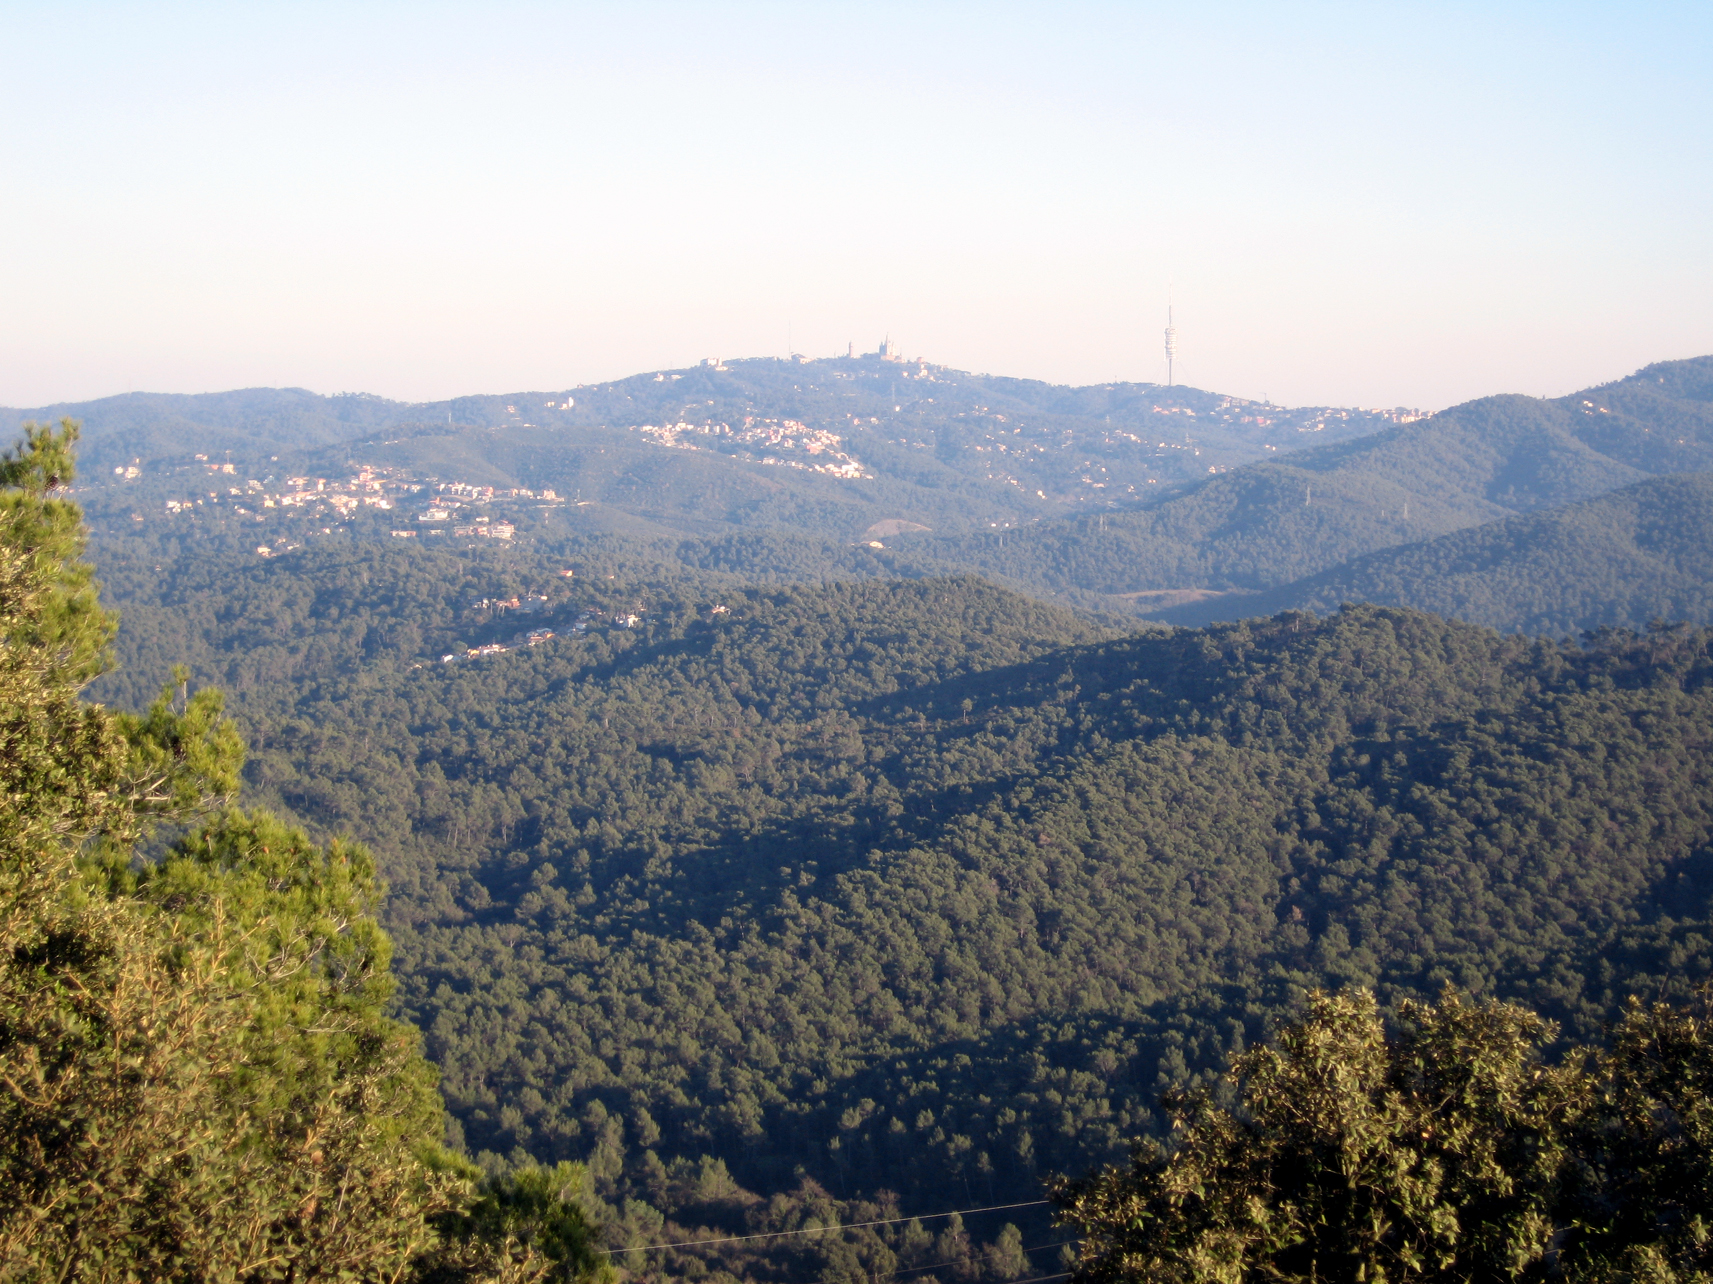 https://upload.wikimedia.org/wikipedia/commons/6/6c/Serra_de_Collserola.jpg